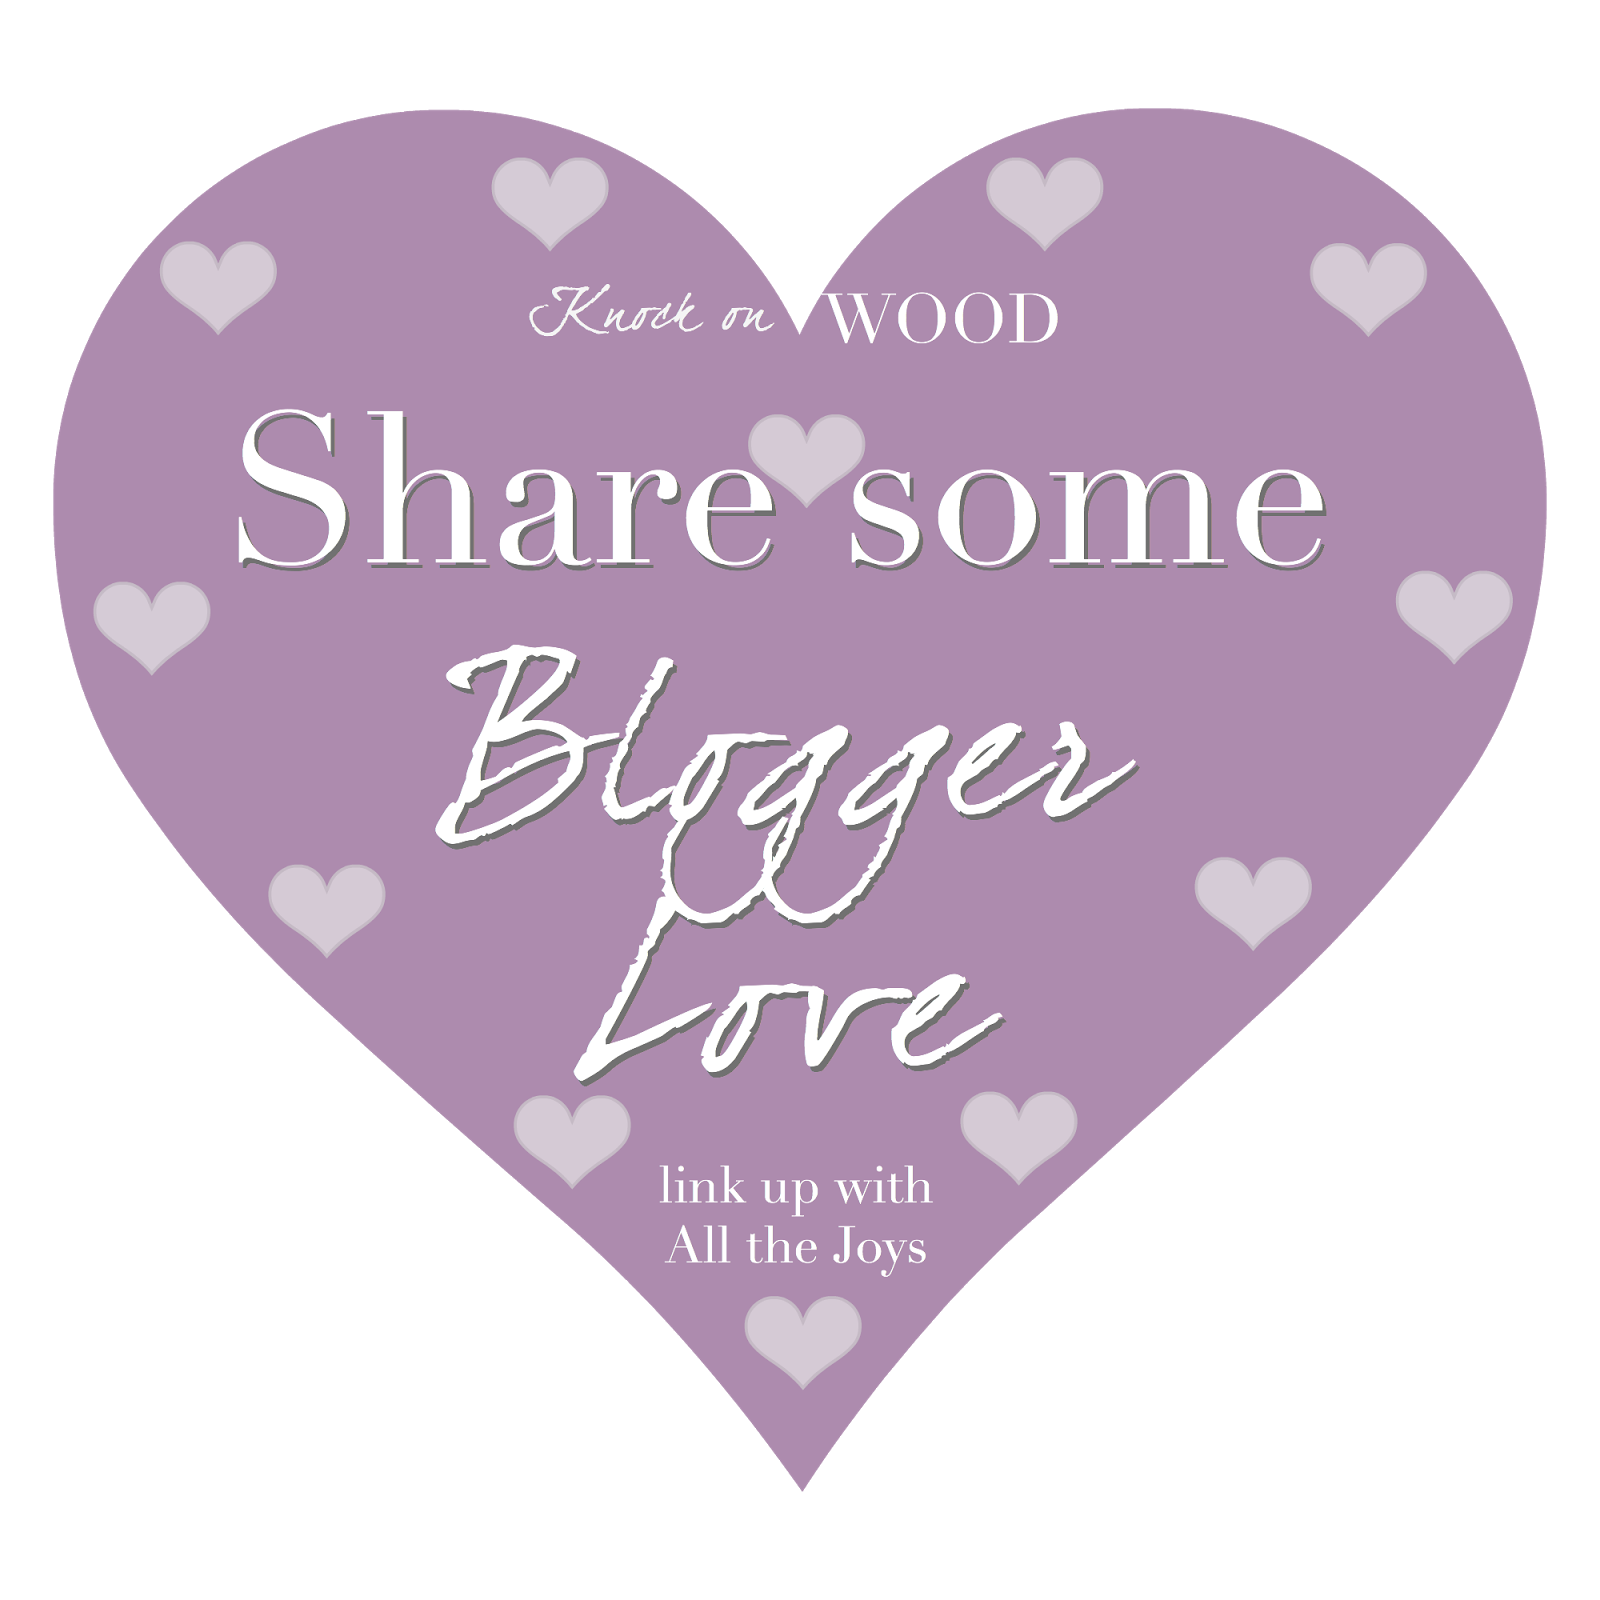 Share some Blogger Love Link-up